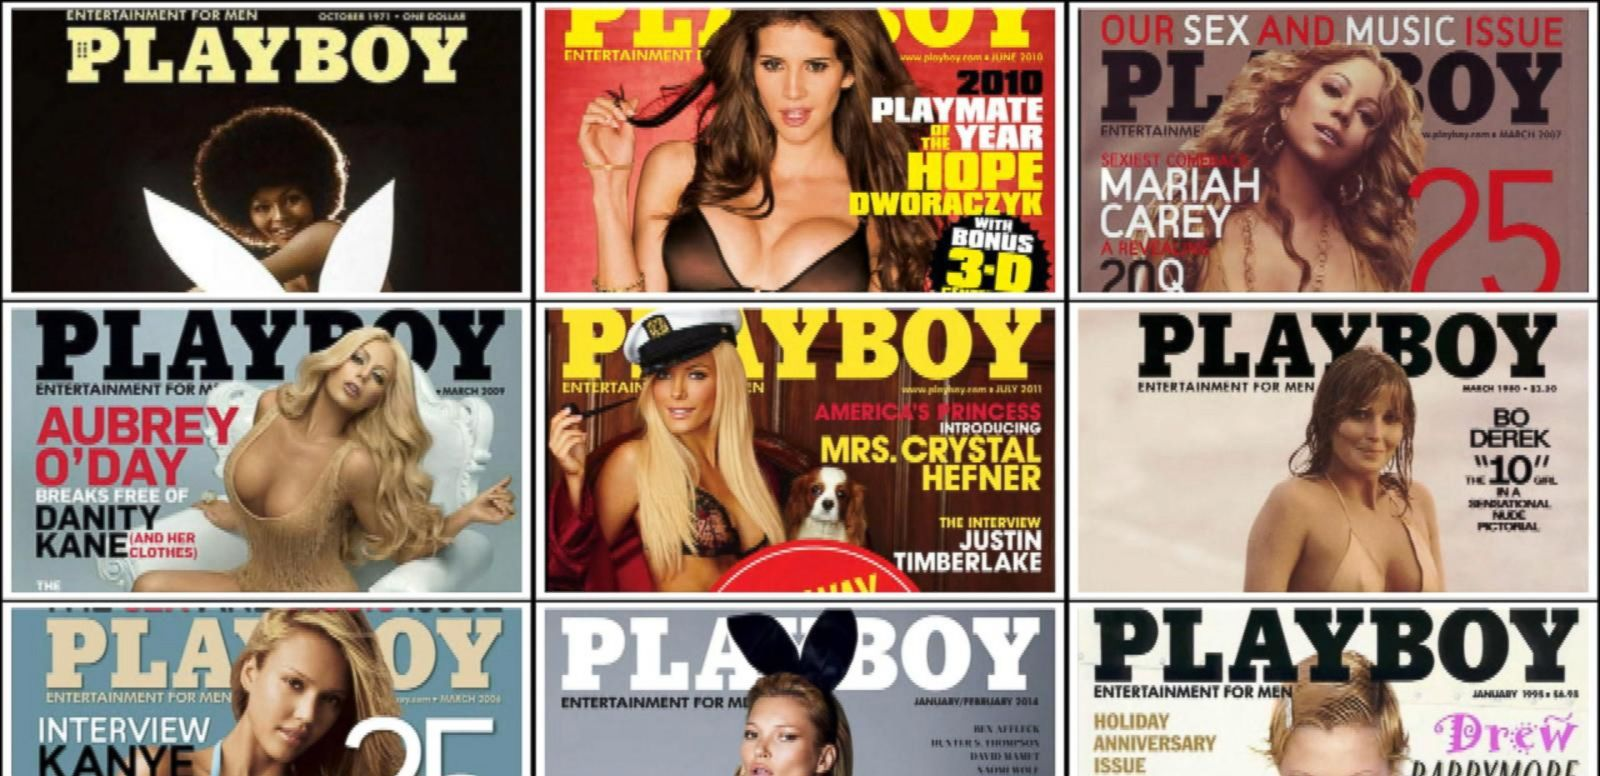 VIDEO: Playboy Drops Fully Nude Pictures From Its Print Editions